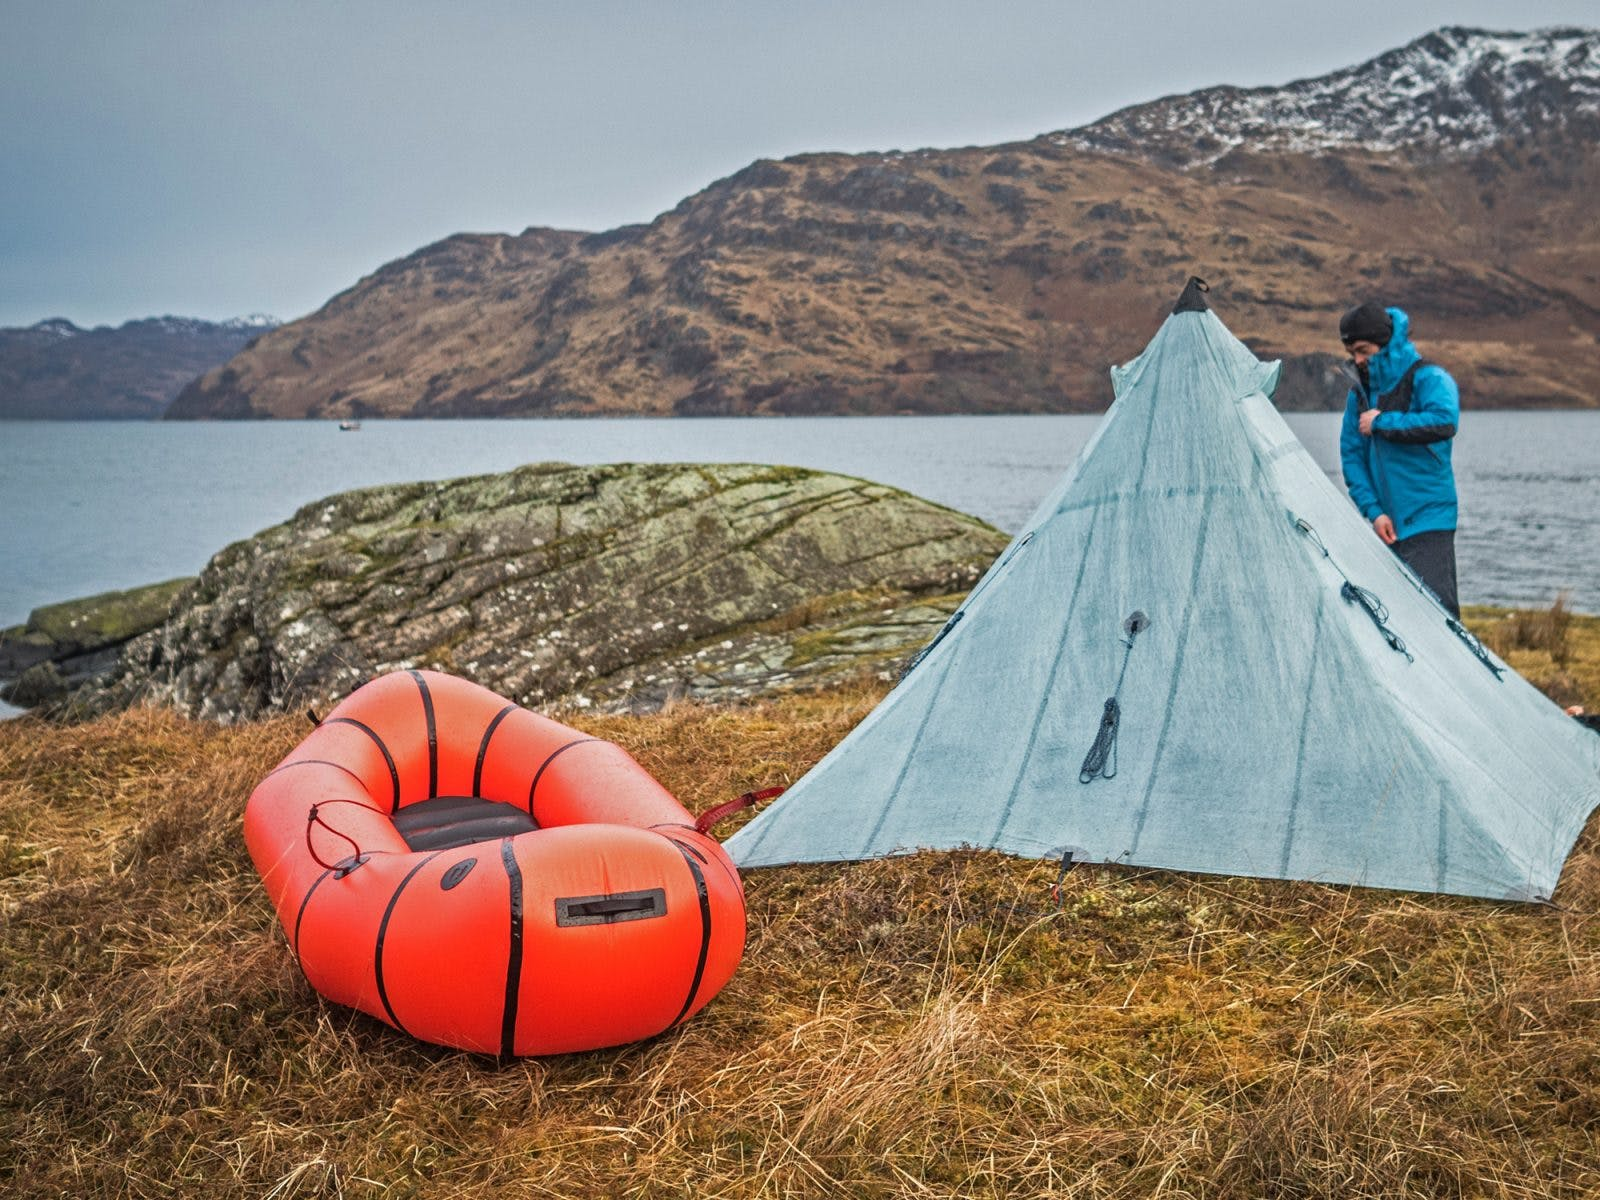 Huw Oliver at camp while on a bikerafting trip. Photo: Annie Lloyd-Evans.